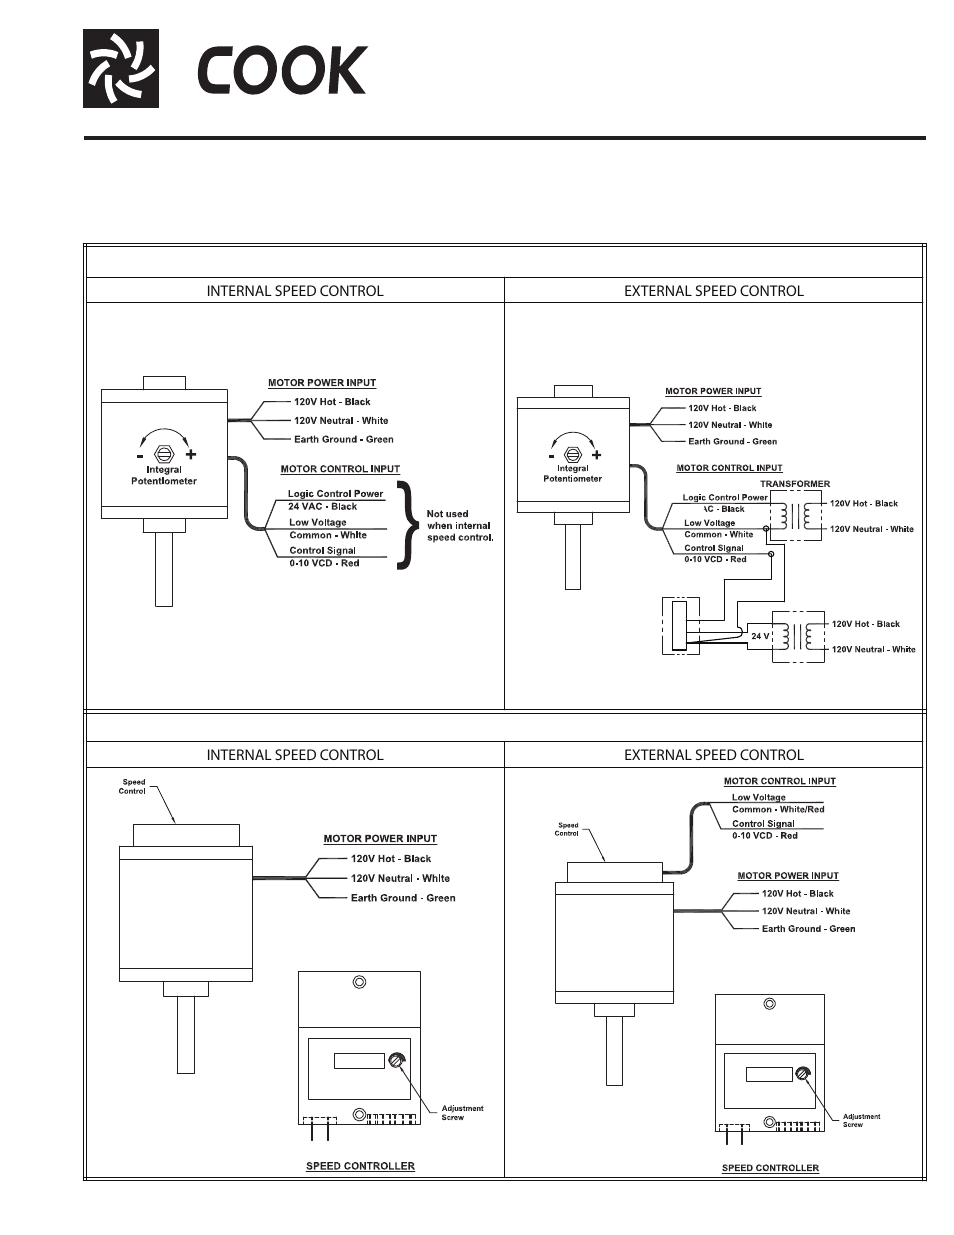 Diagram Cook Ec Motor Wiring User Manual